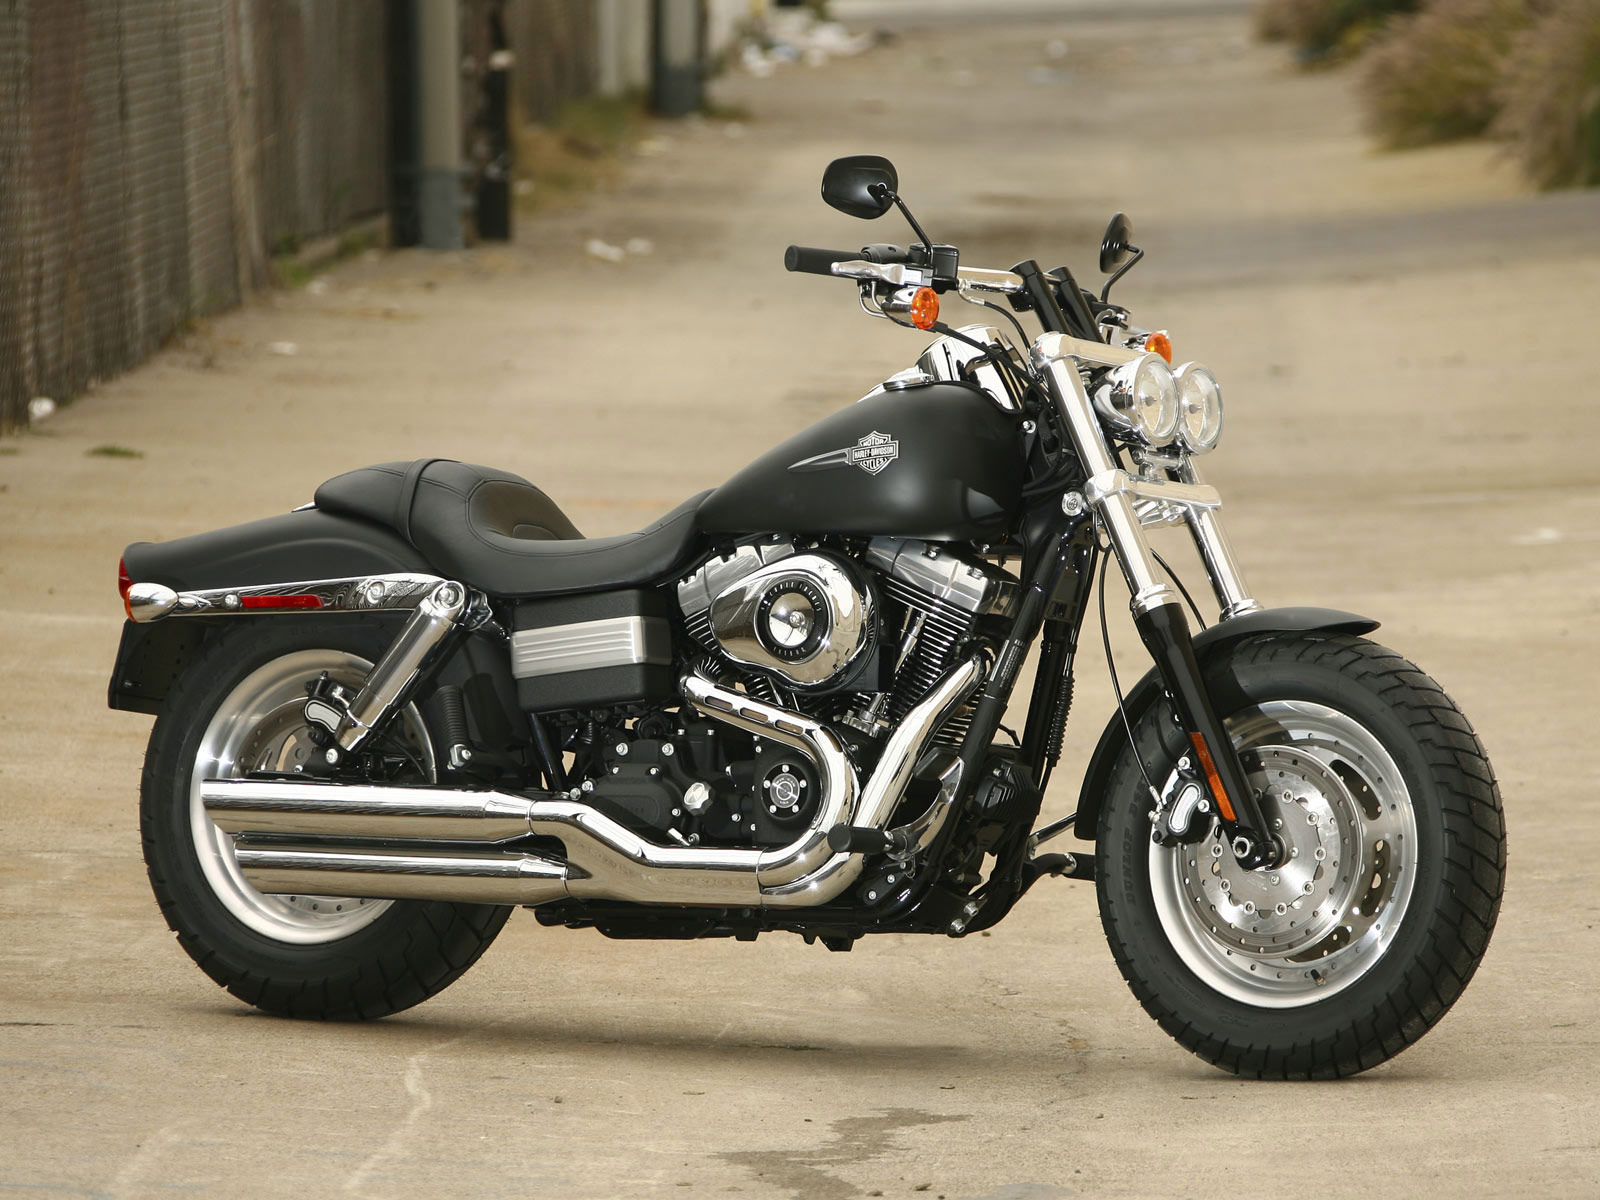 2012 Harley Davidson Fxdc Dyna Super Glide For Sale On: FXDC Dyna Super Glide Custom, 2008 Harley-Davidson Pictures